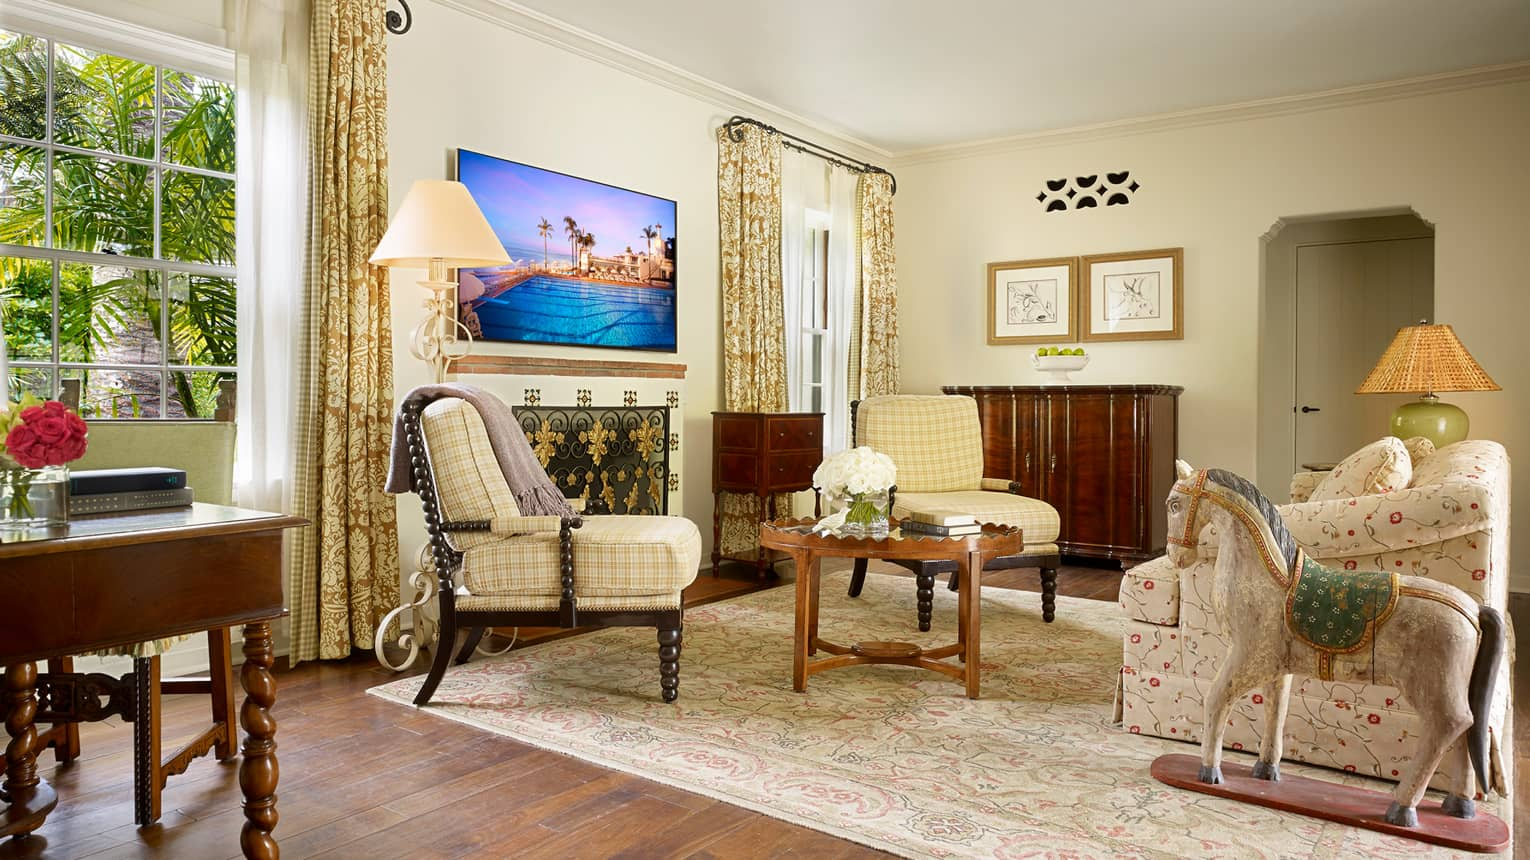 Bungalow Suite sunny living room with yellow plaid accent chairs, floral sofa, rocking horse statue